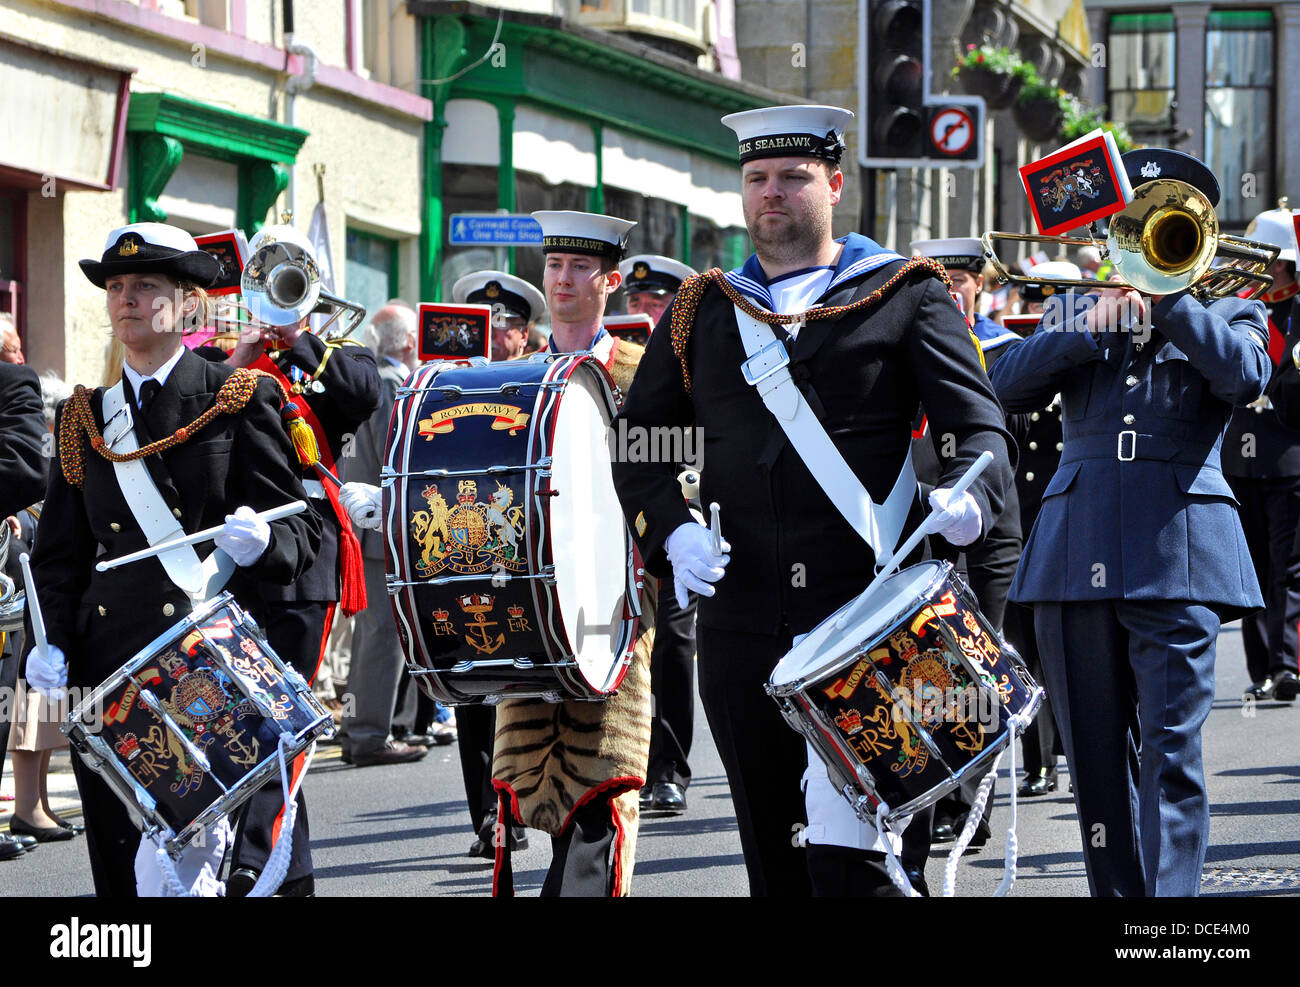 The Royal Navy Band marching through the streets of Helston in Cornwall, UK - Stock Image